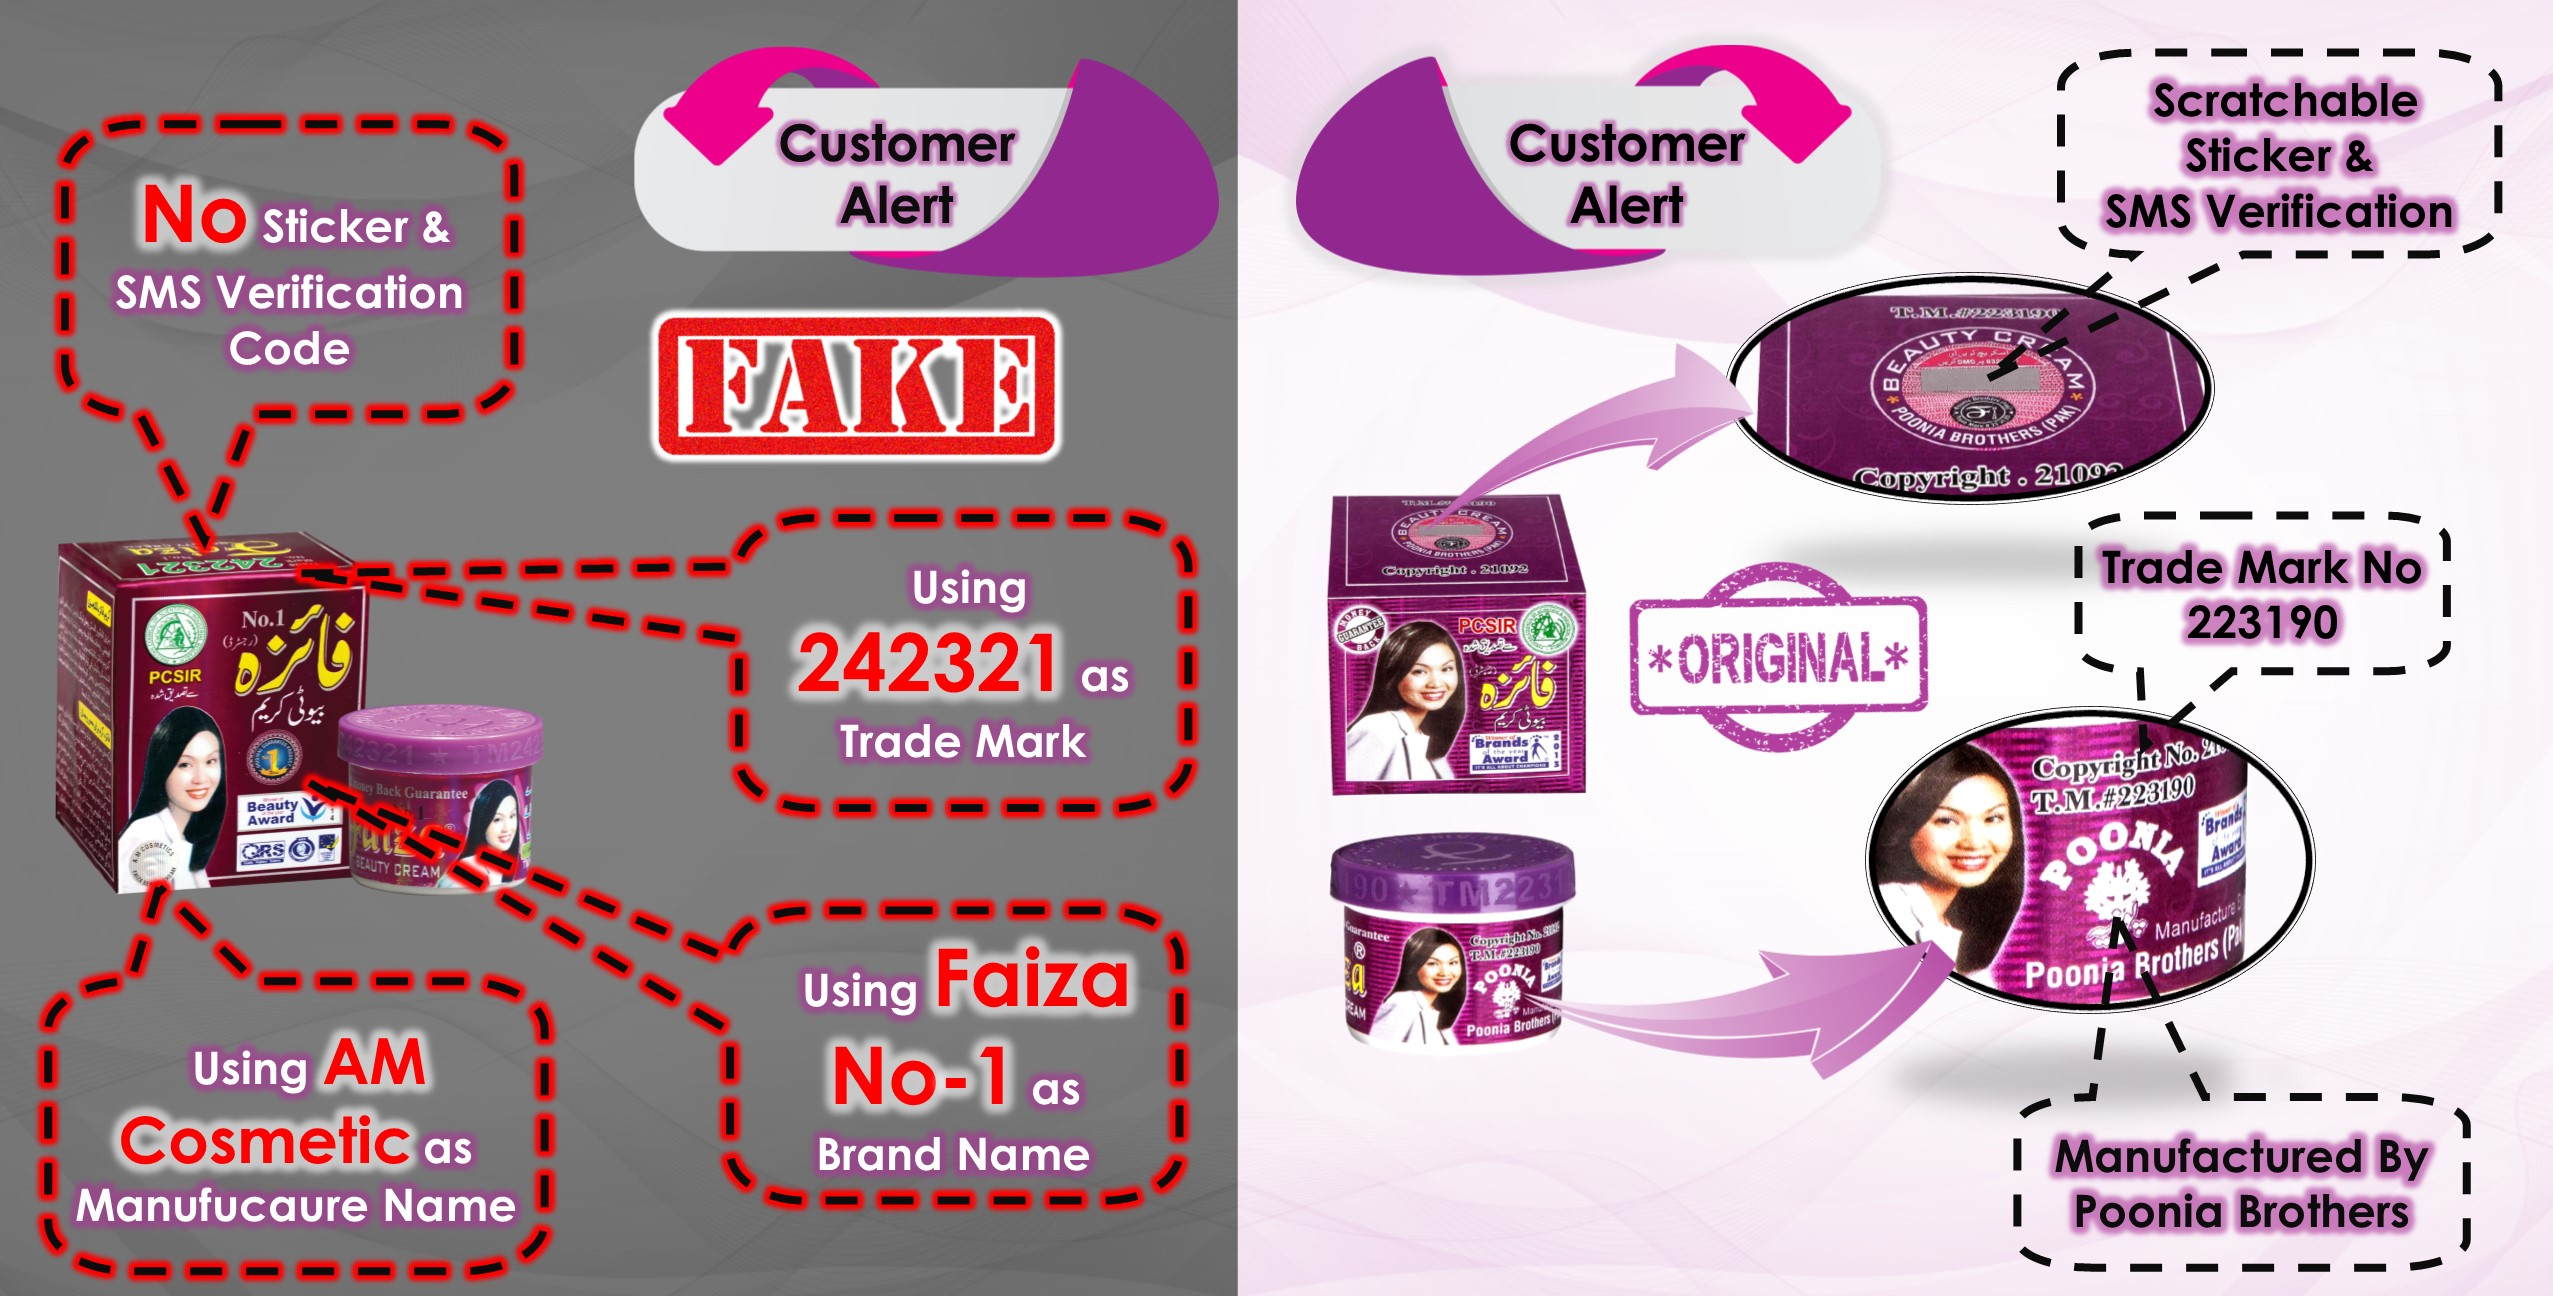 Fake Faiza Beauty Cream